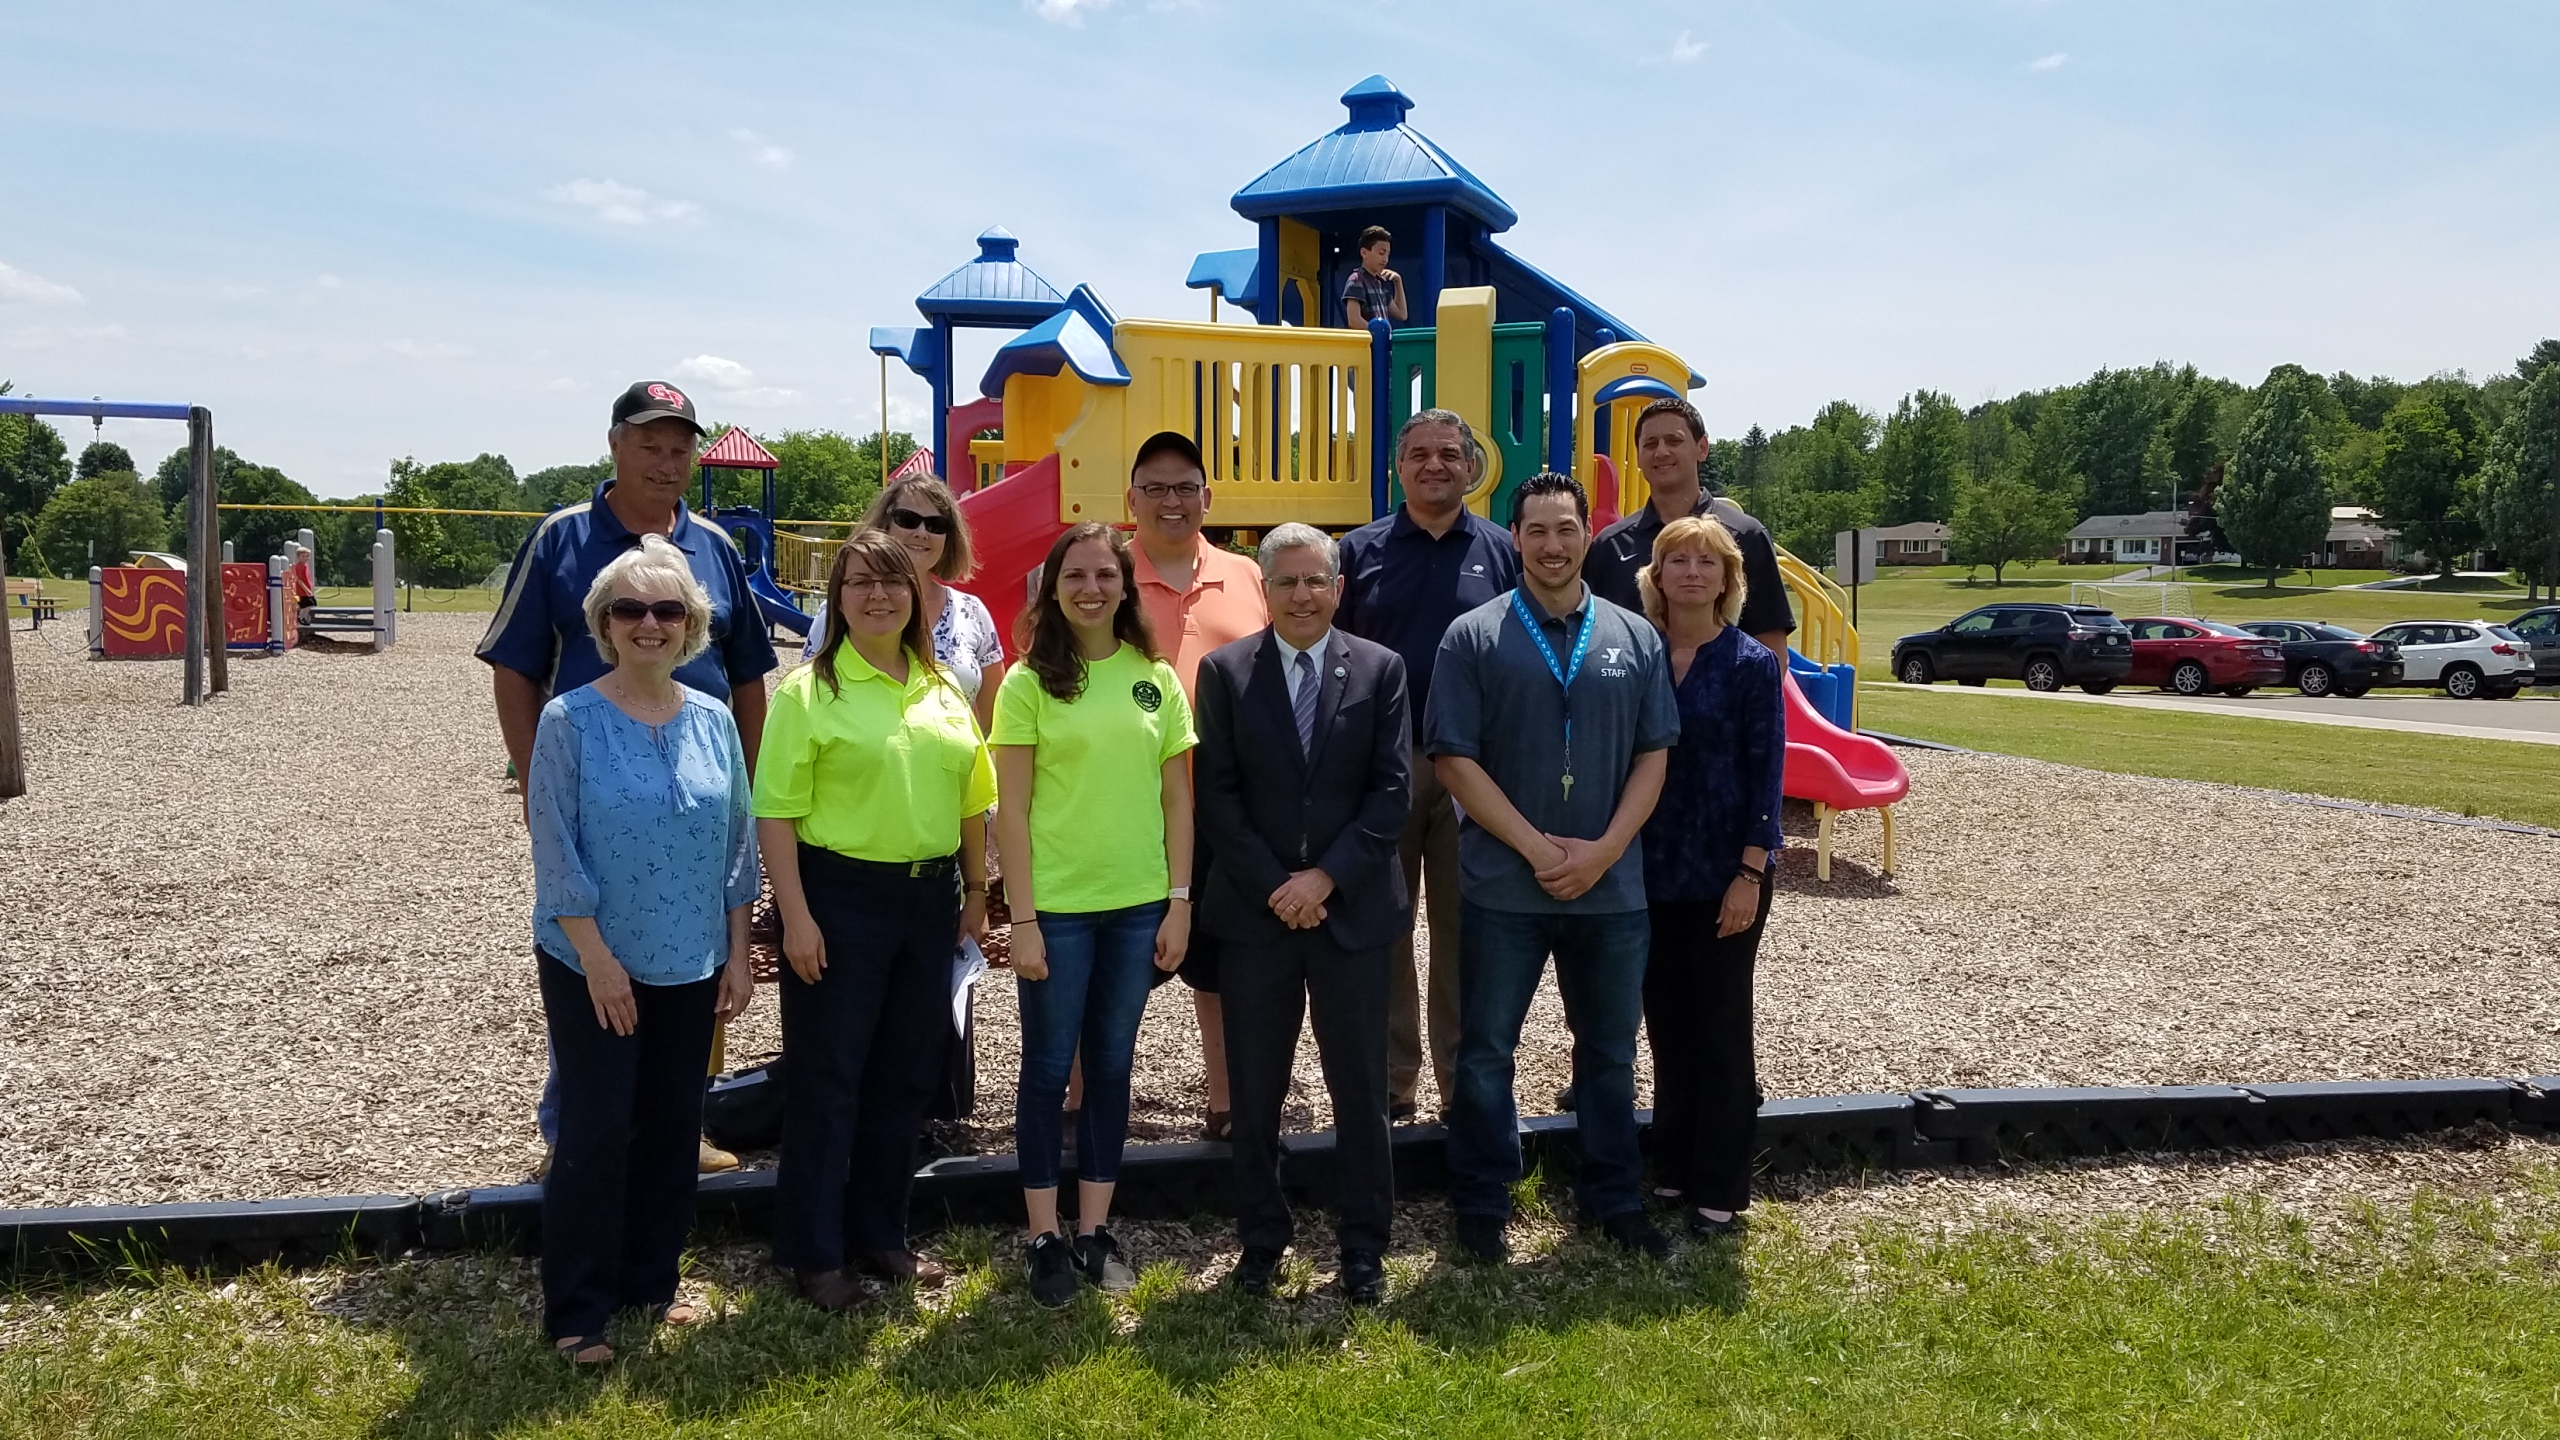 Summer Playground Program - City of Jamestown, New York